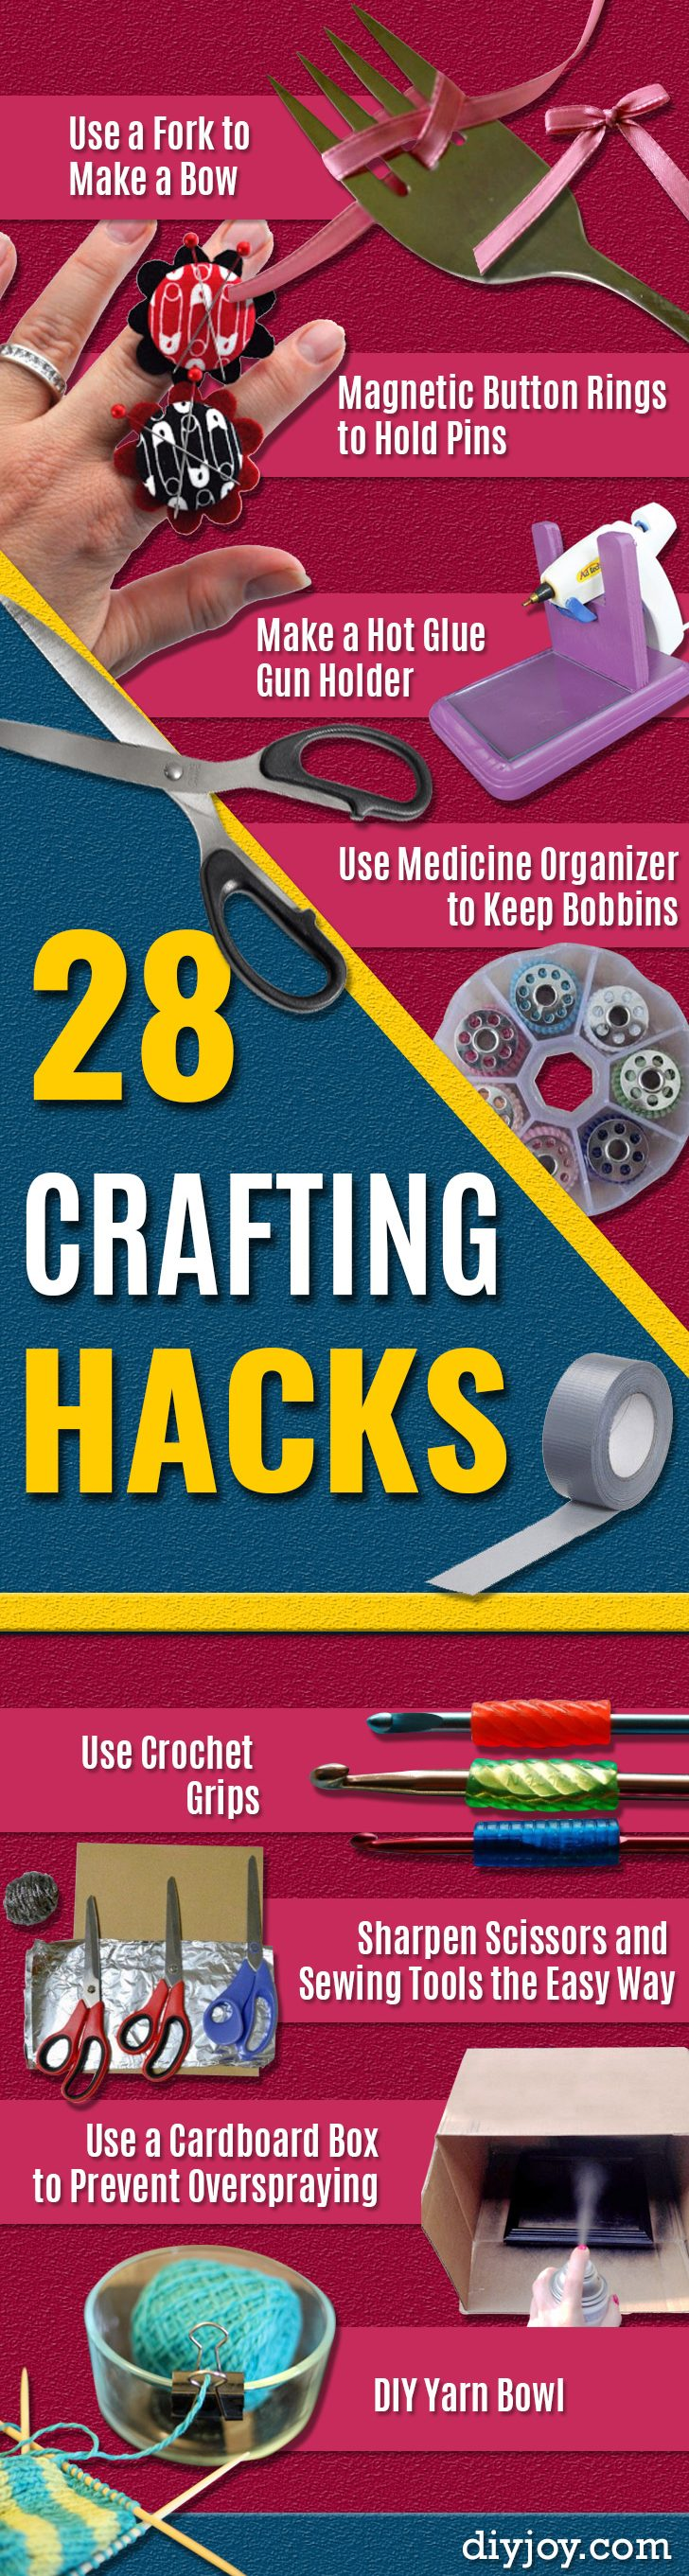 28 Clever Crafting Hacks